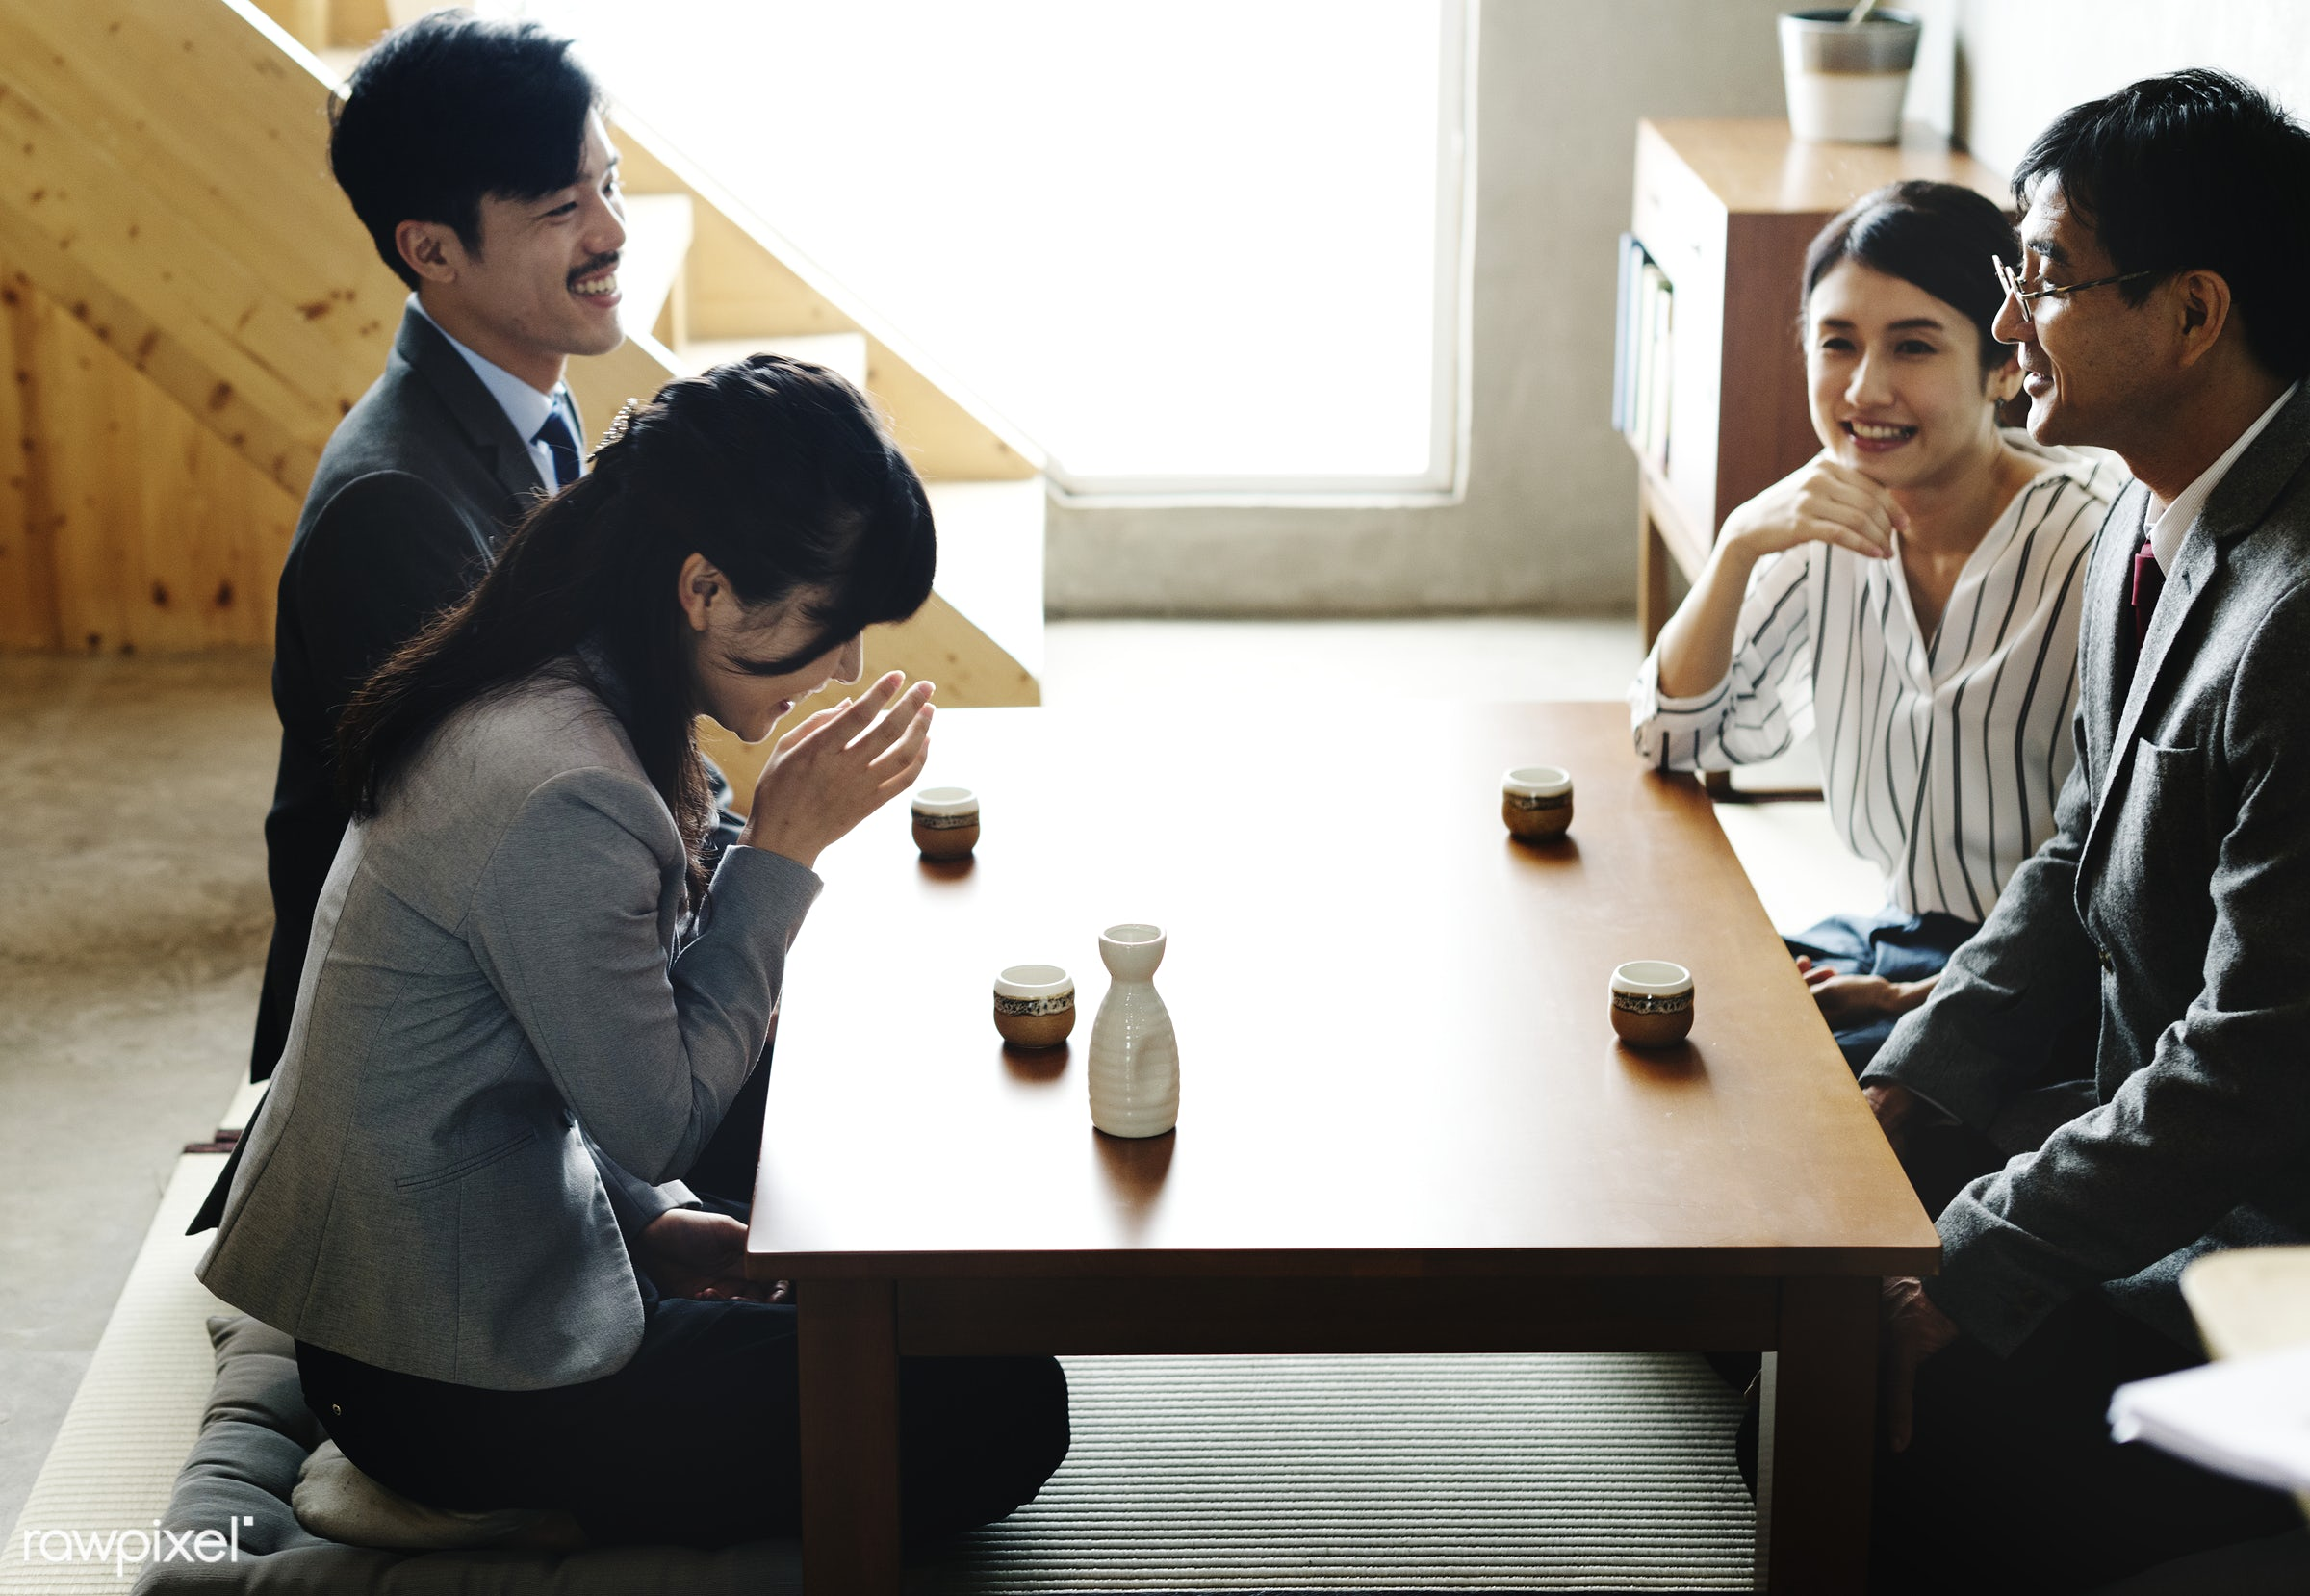 Japanese friends having a great time together - japan, family, asia, asian, bowing, ceremony, culture, drinking, formal,...